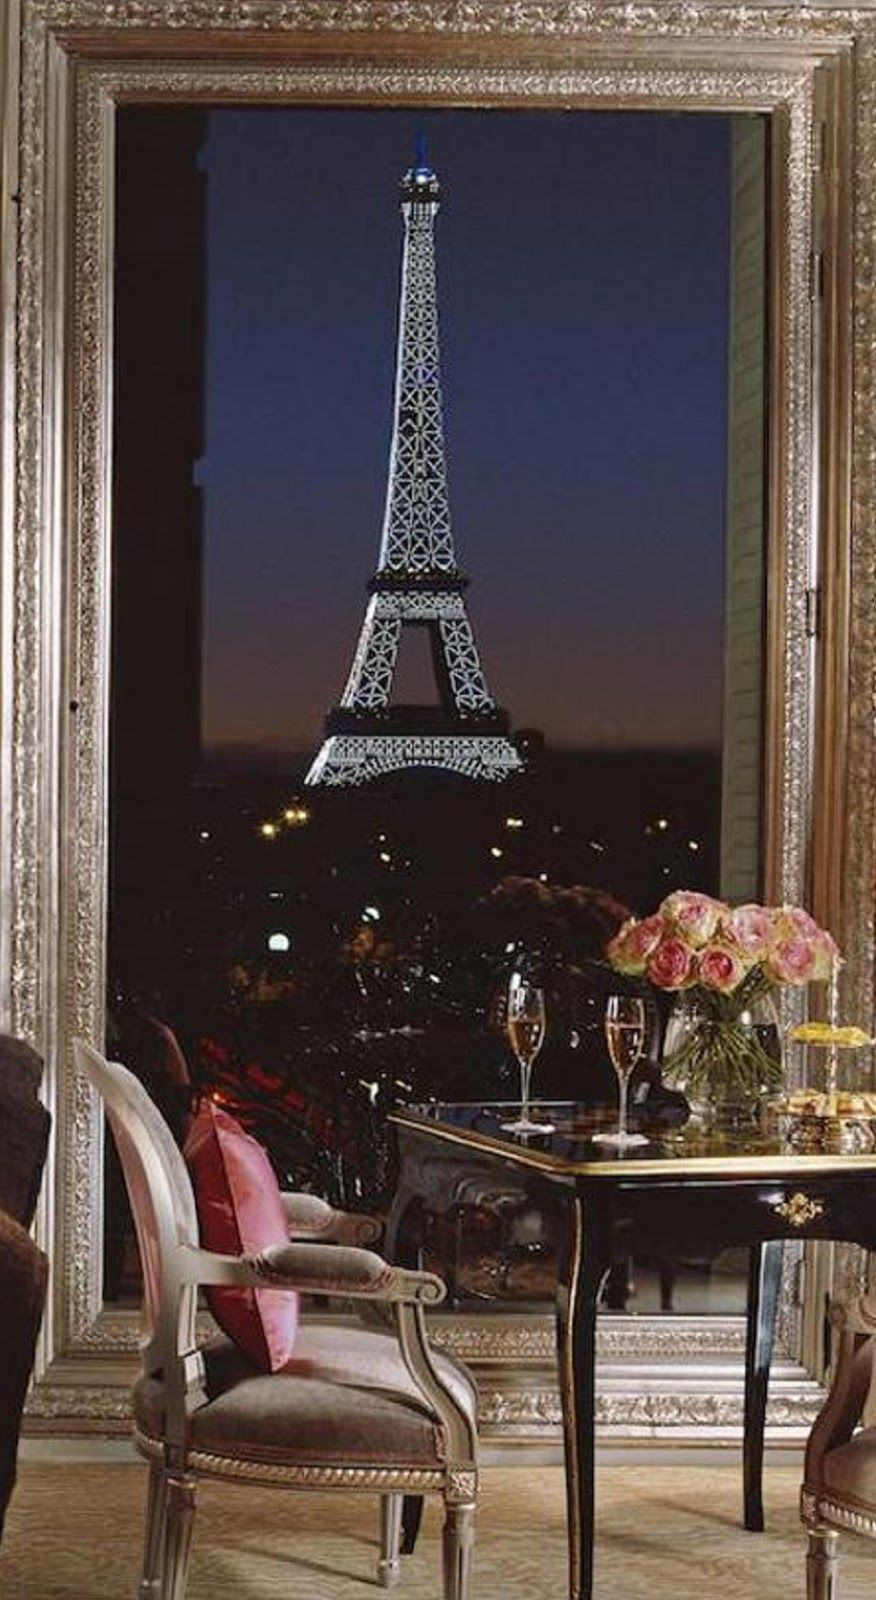 3 Paris Hotels With Eiffel Tower View